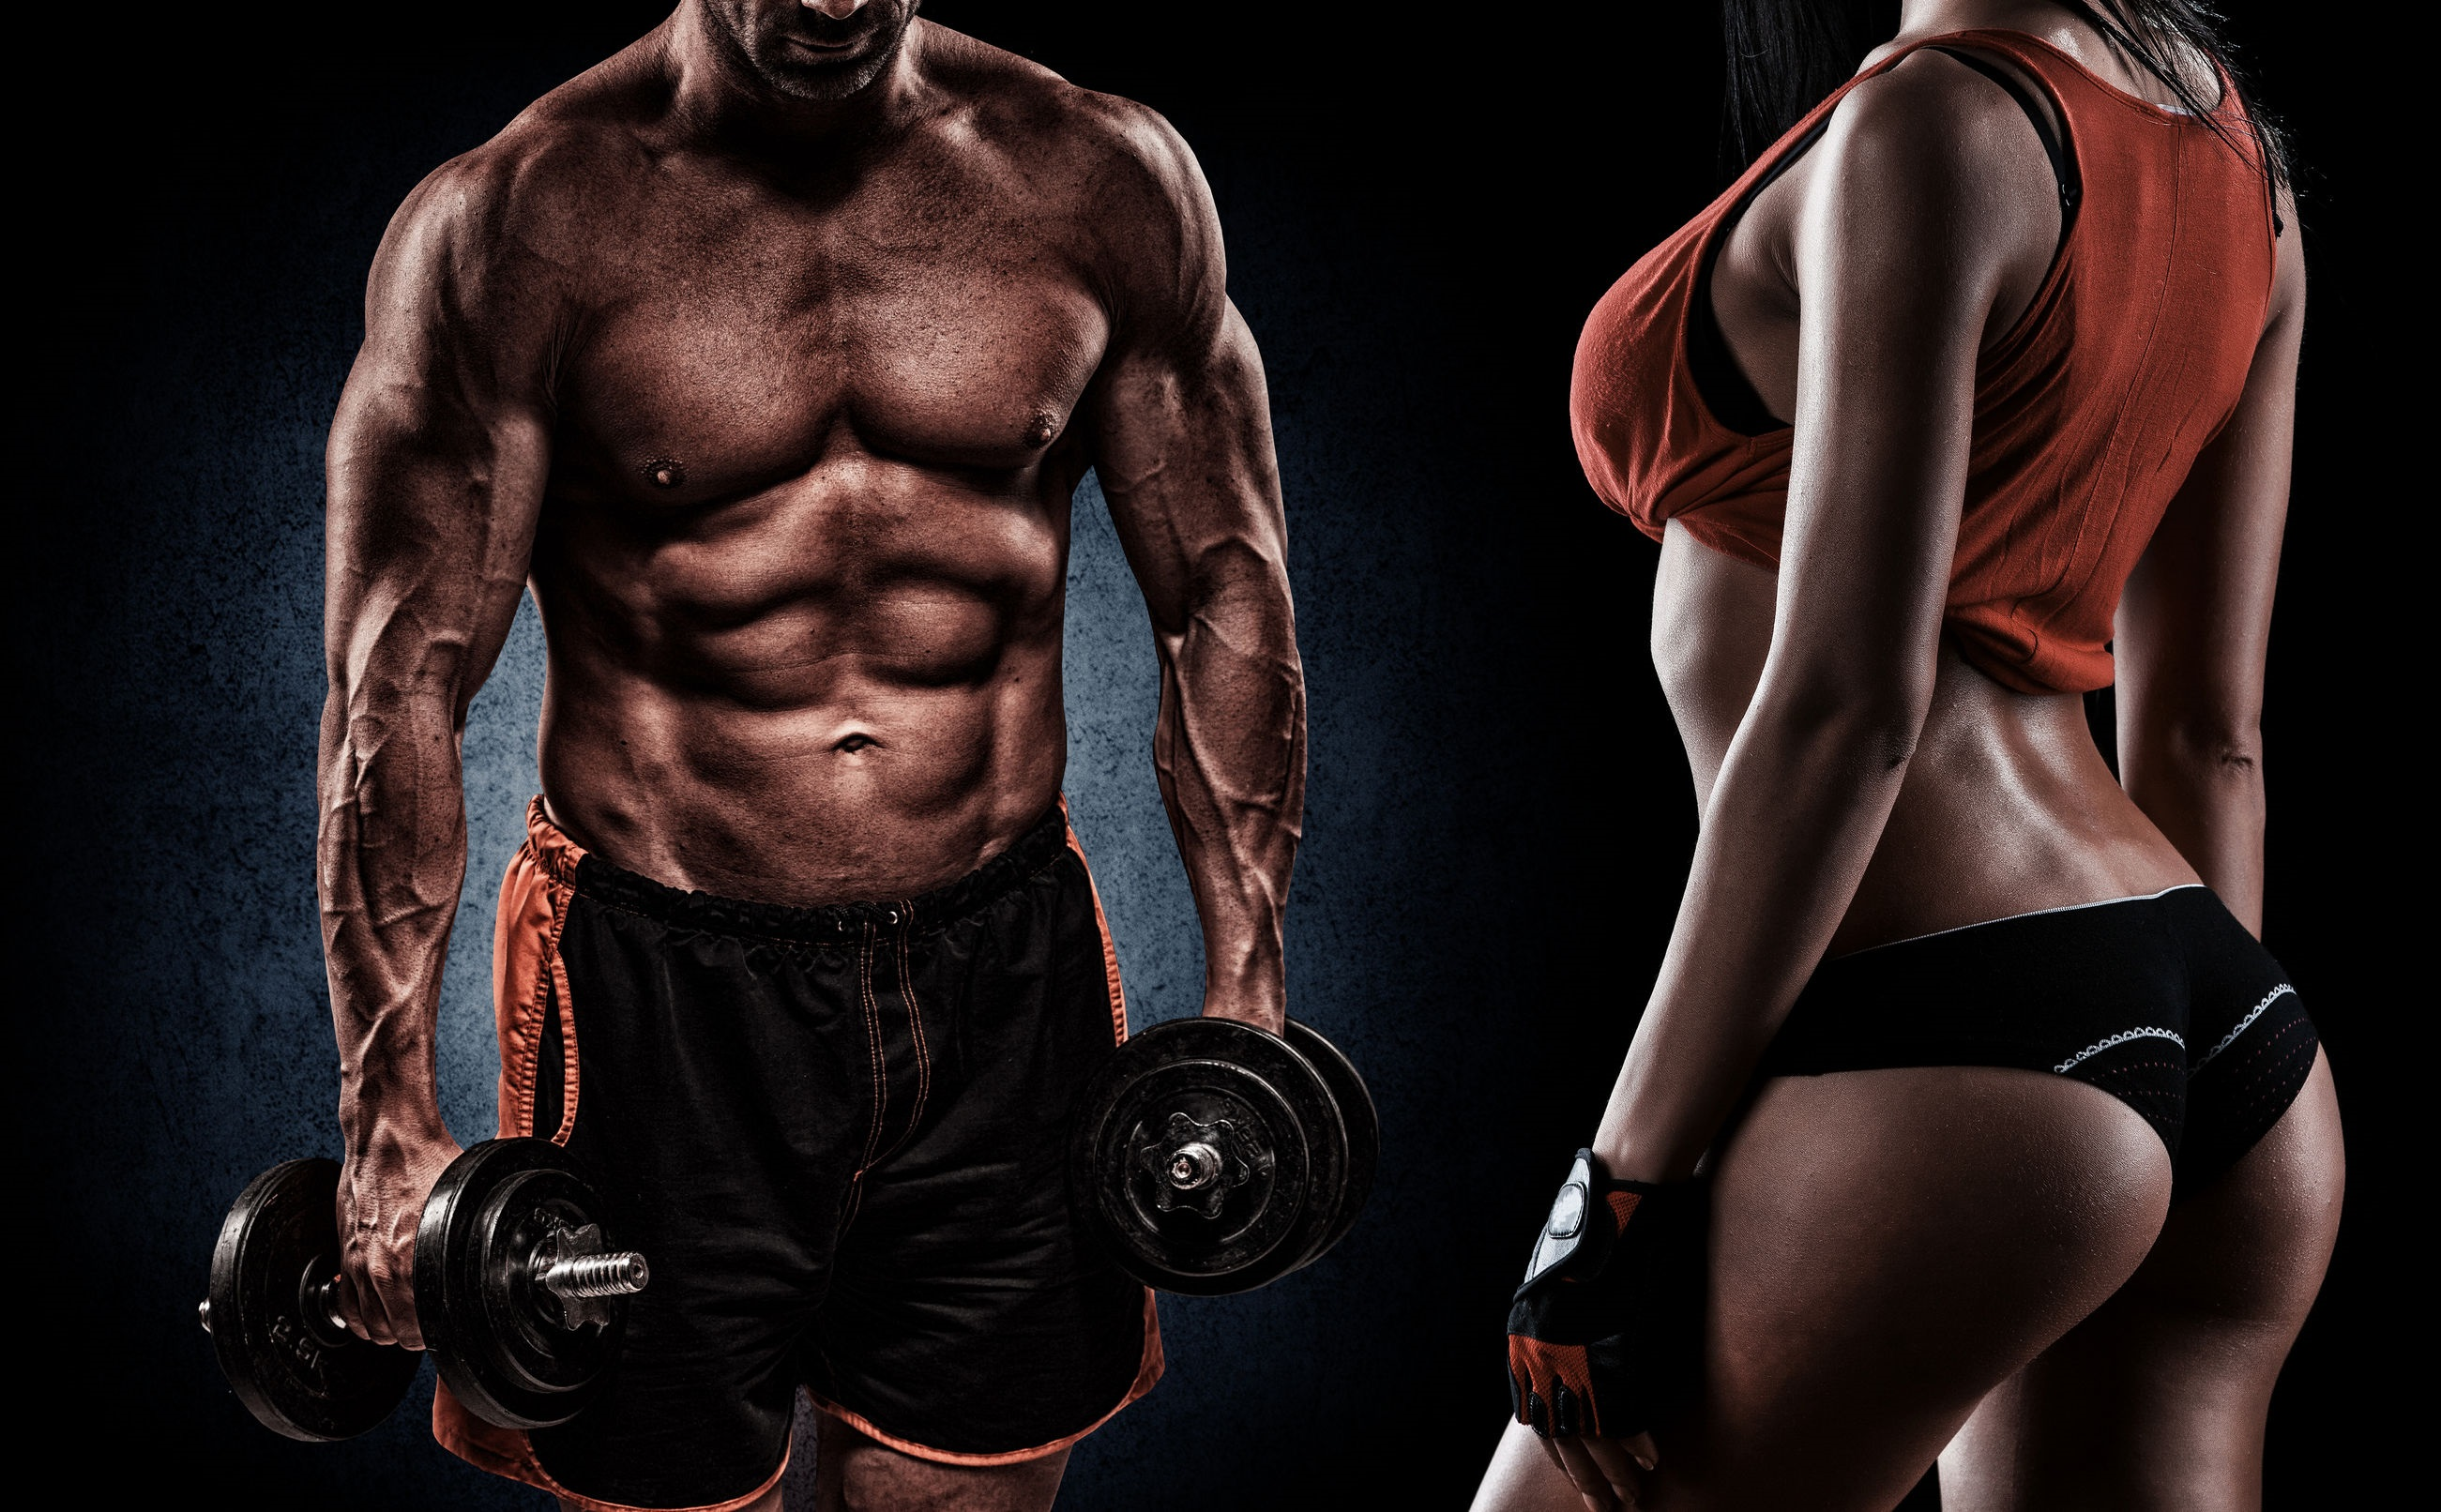 What Peptides Do Bodybuilders Use And What Are Their Benefits